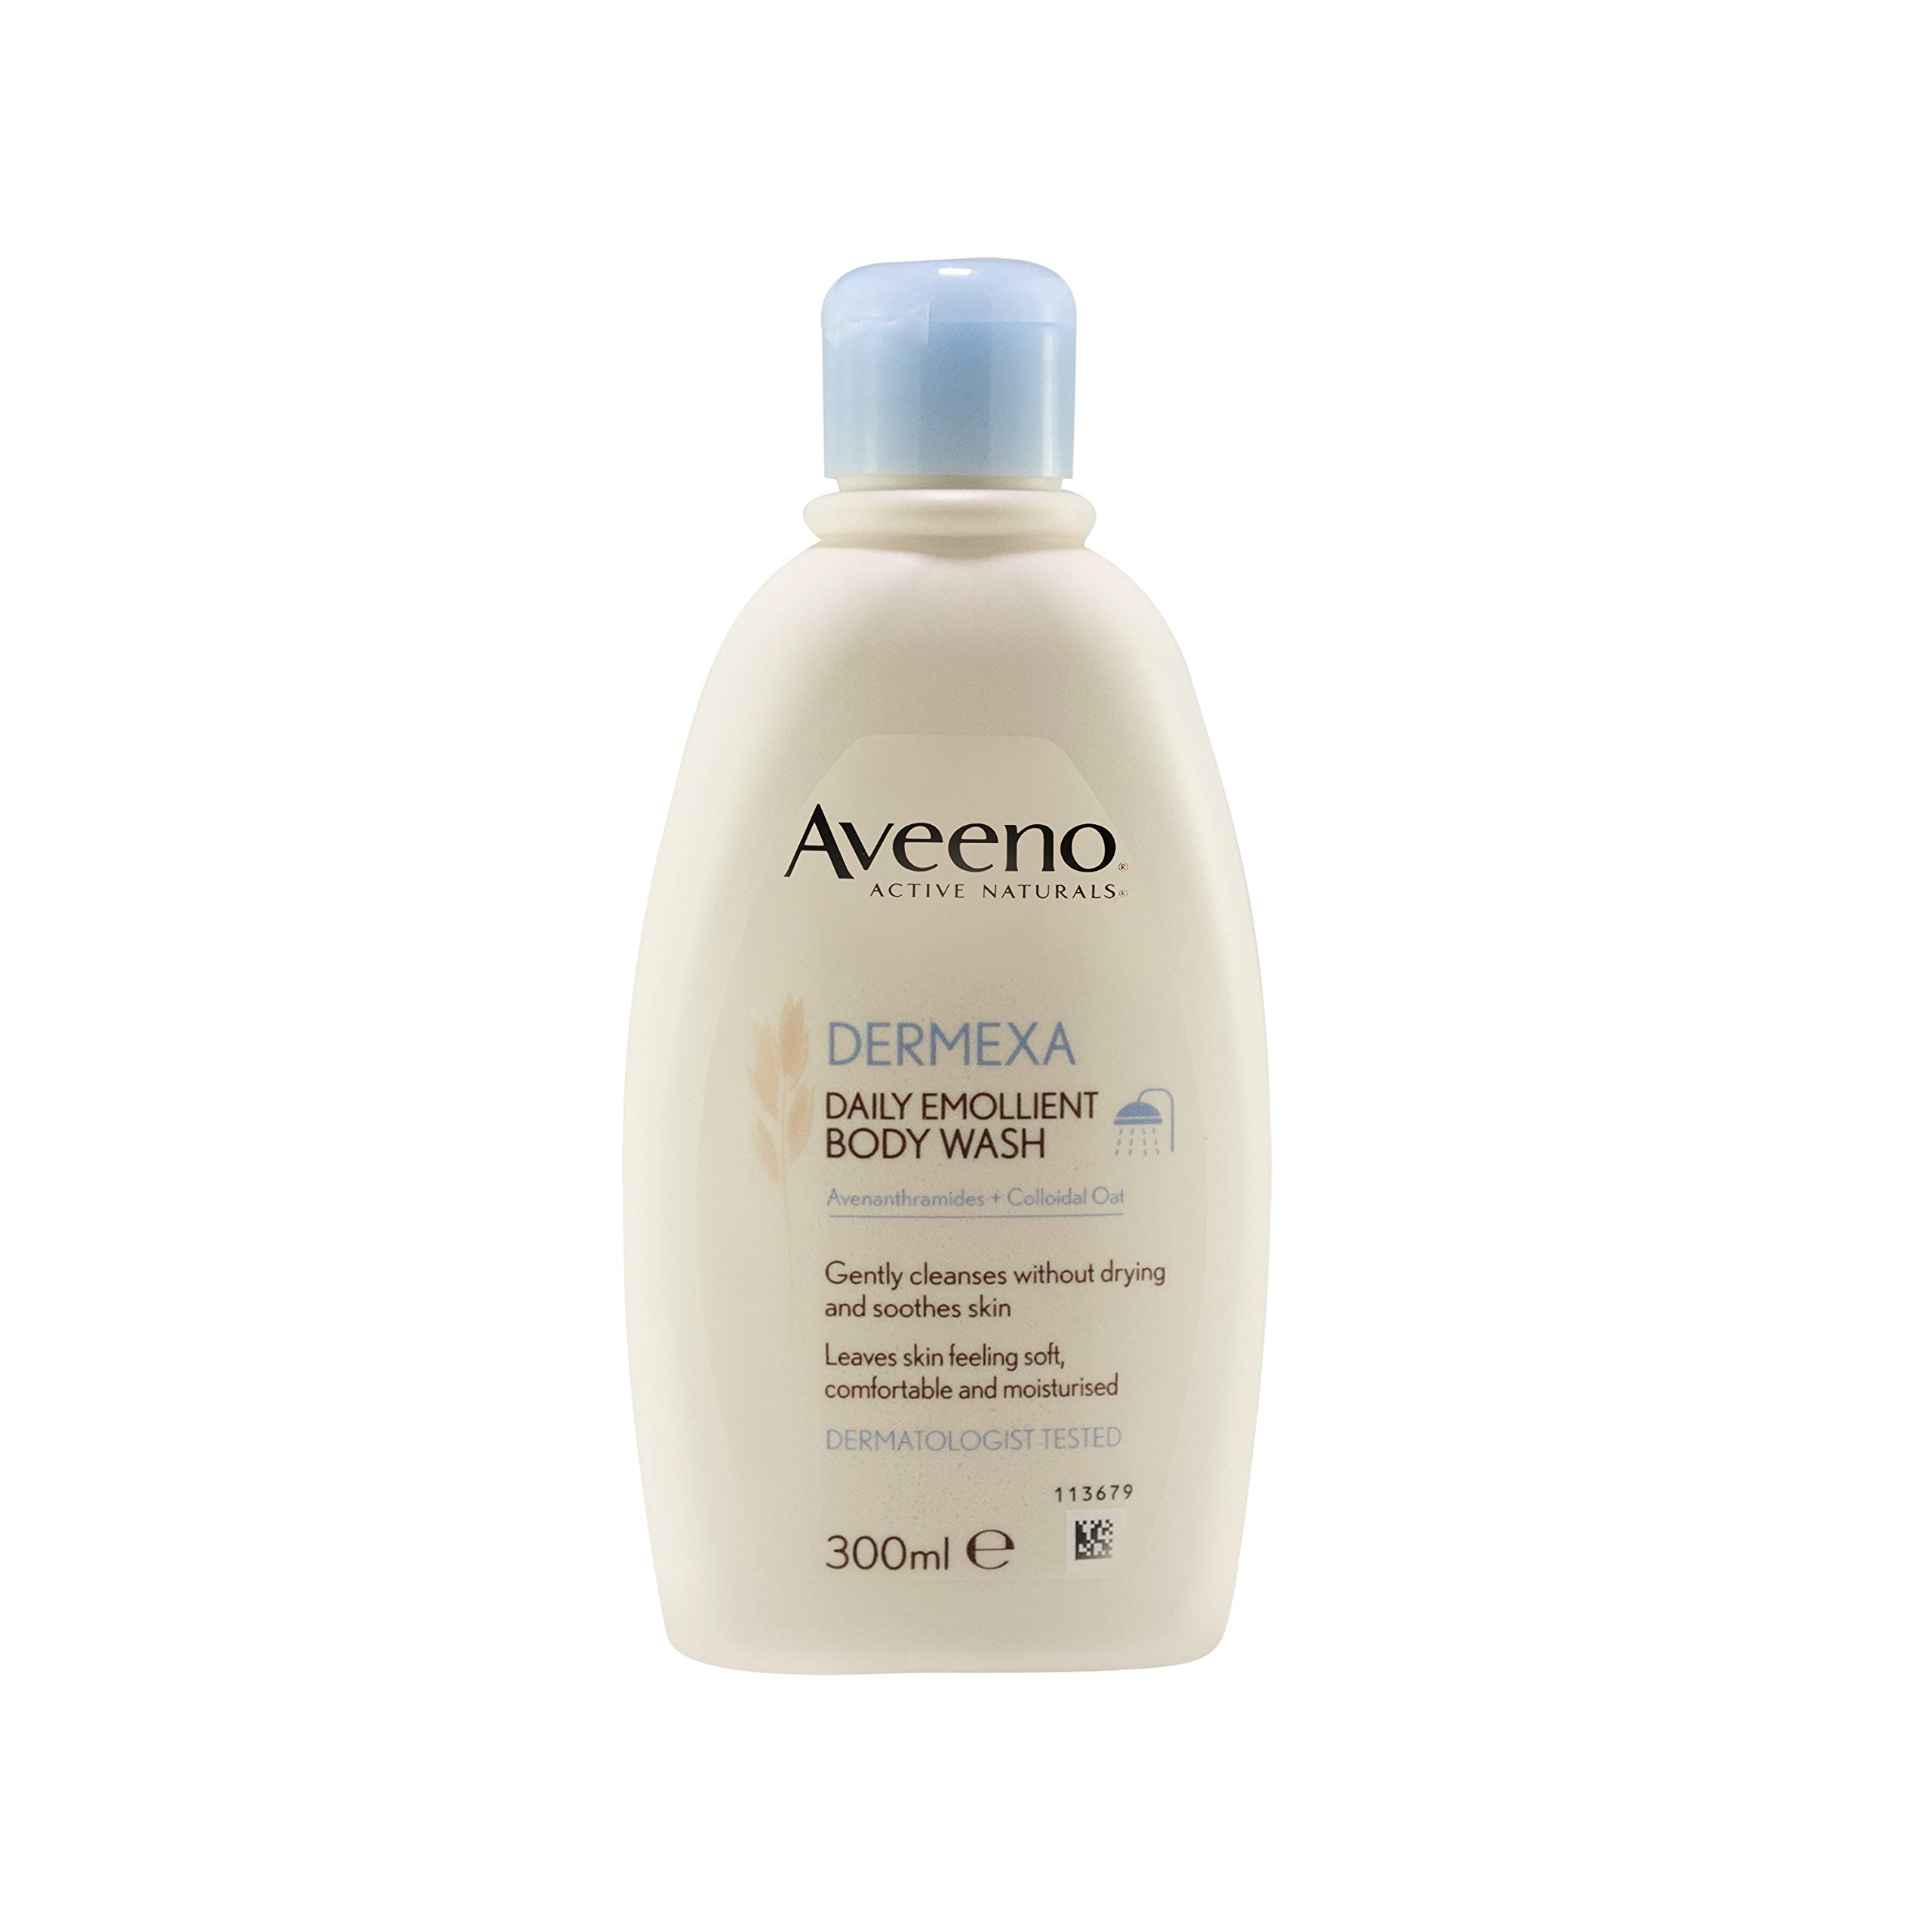 Aveeno Dermexa Daily Emollient Body Wash, 300 ml